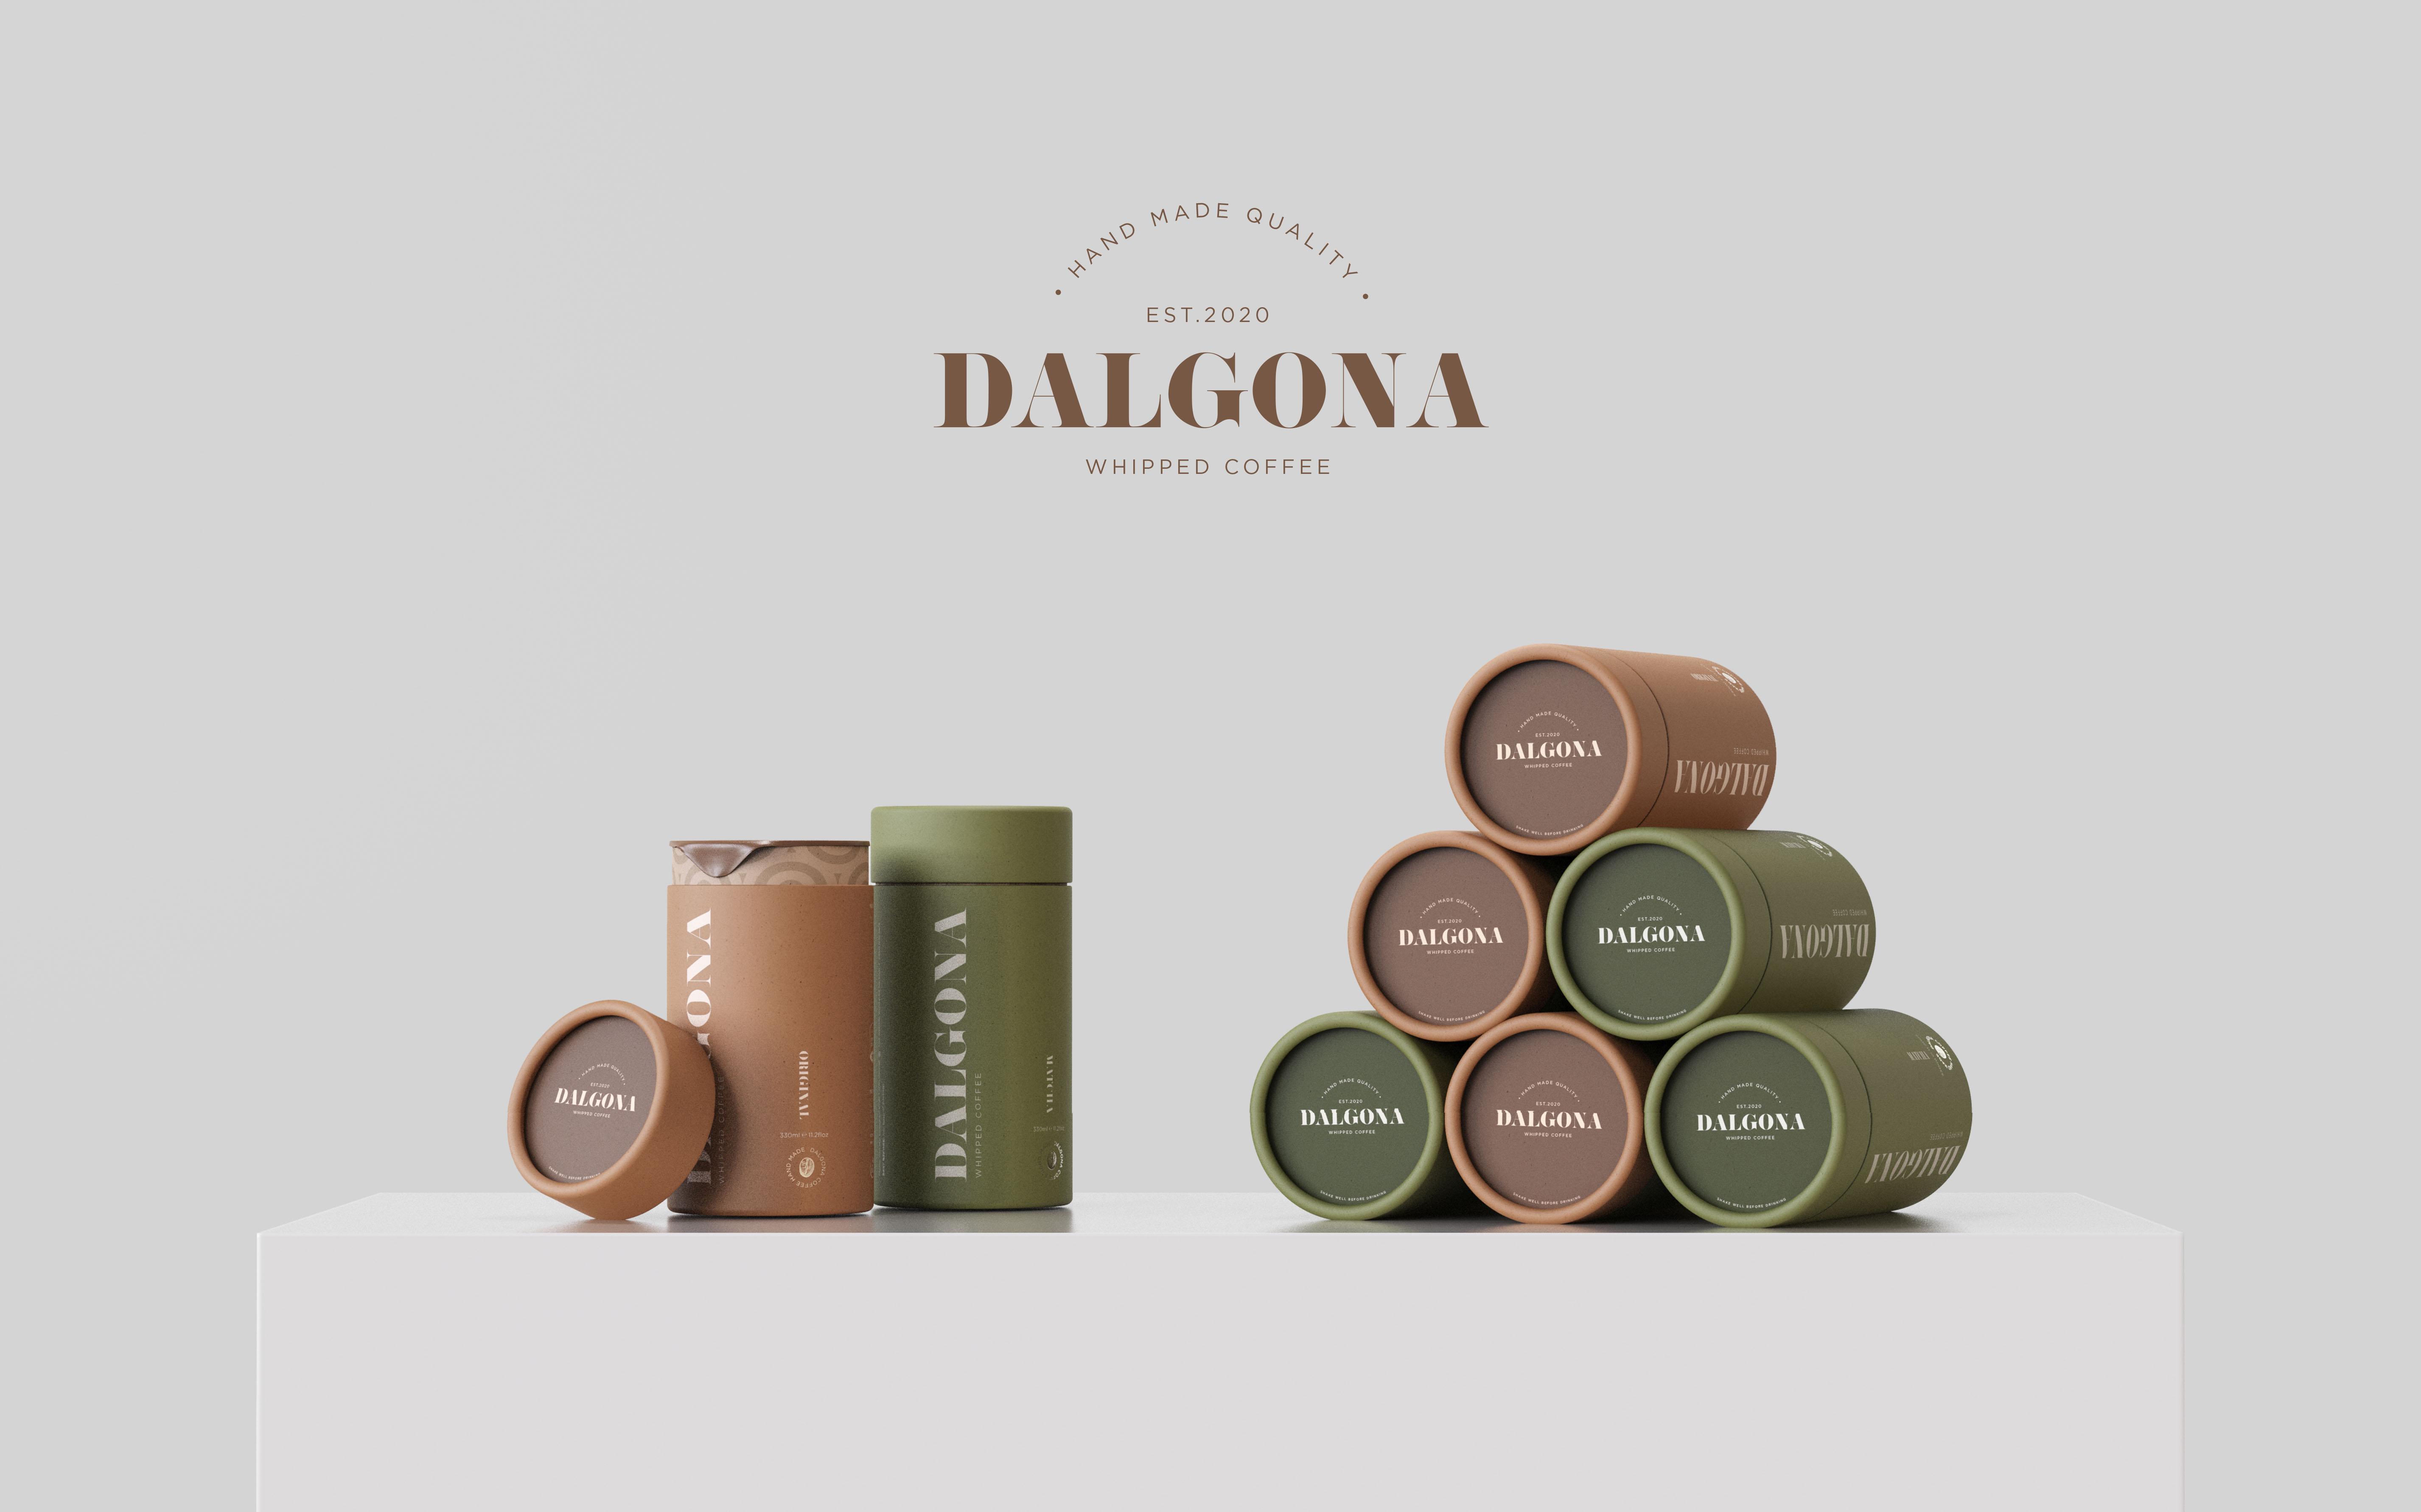 Dalgona Whipped Coffee Packaging